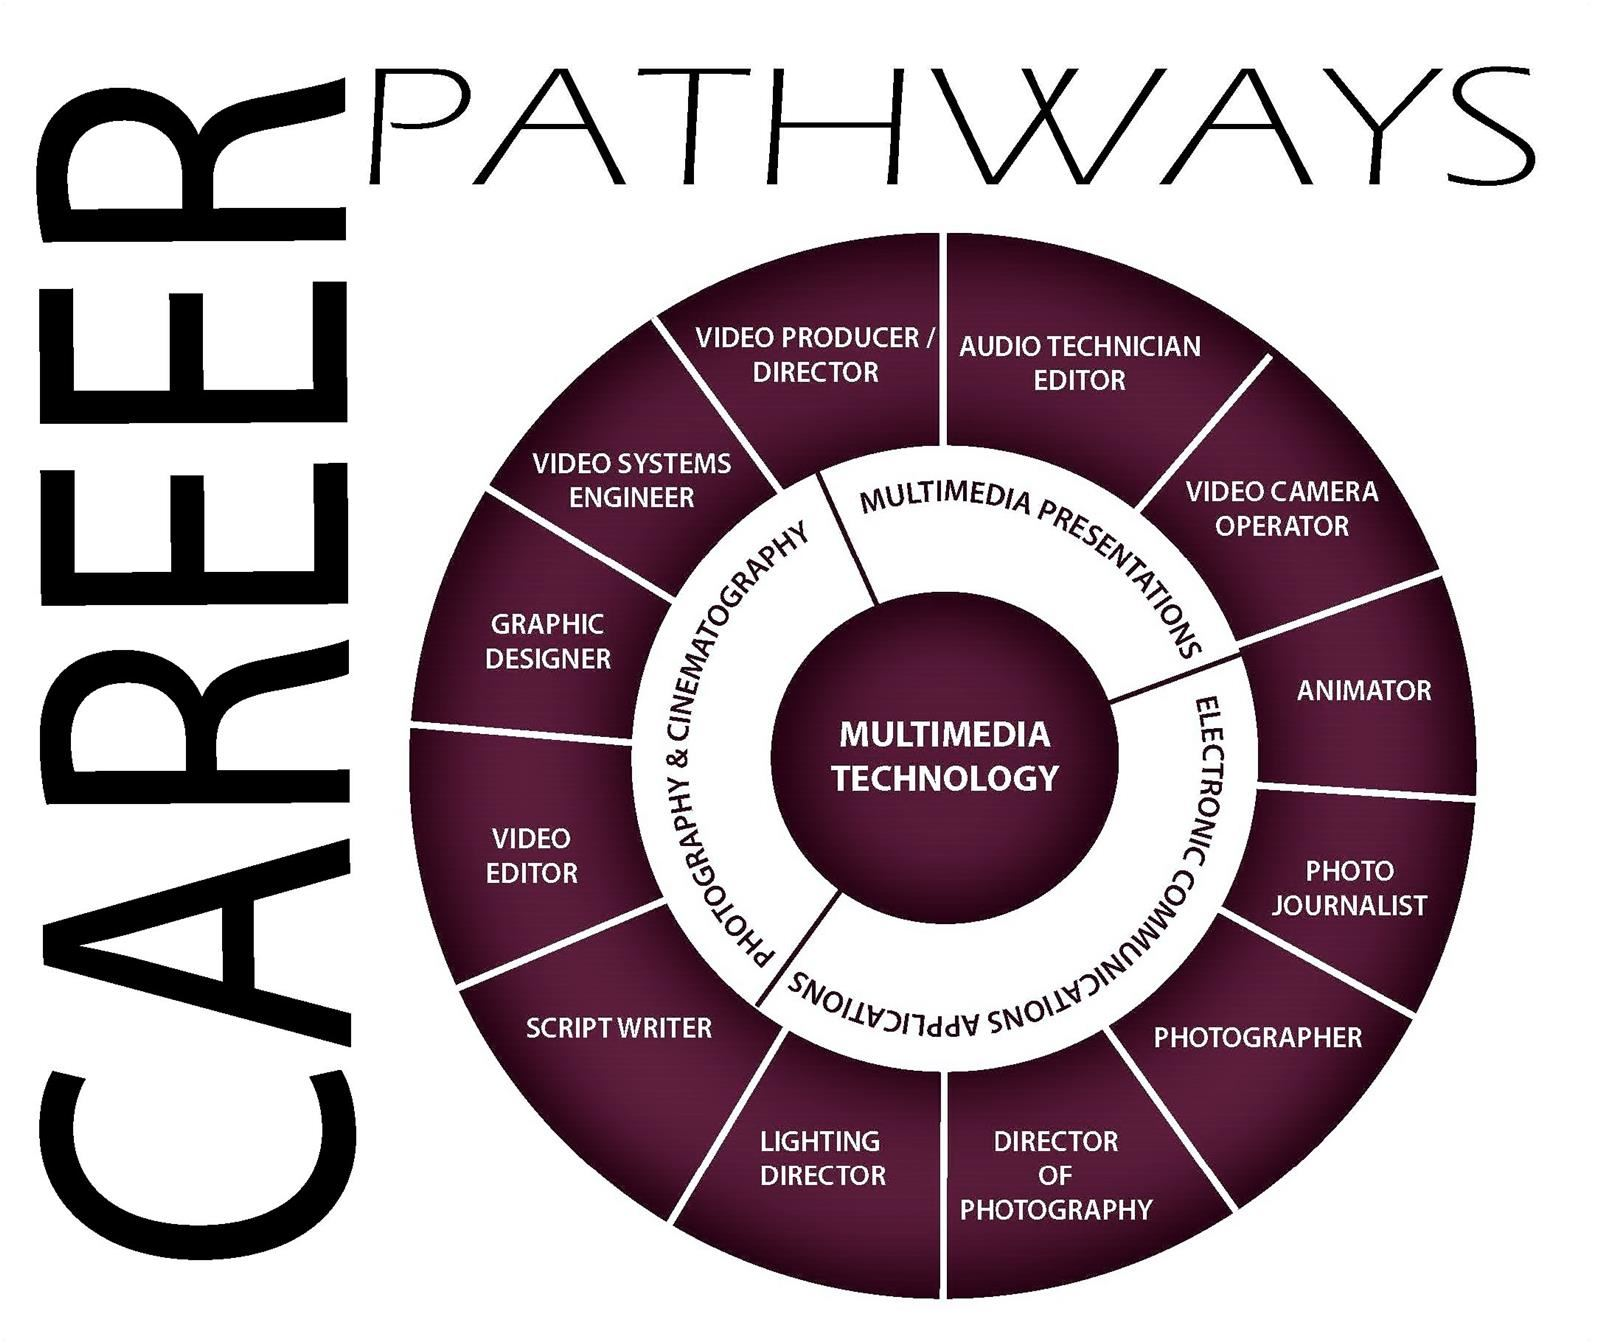 Career Pathway Wheel for Multimedia Technology